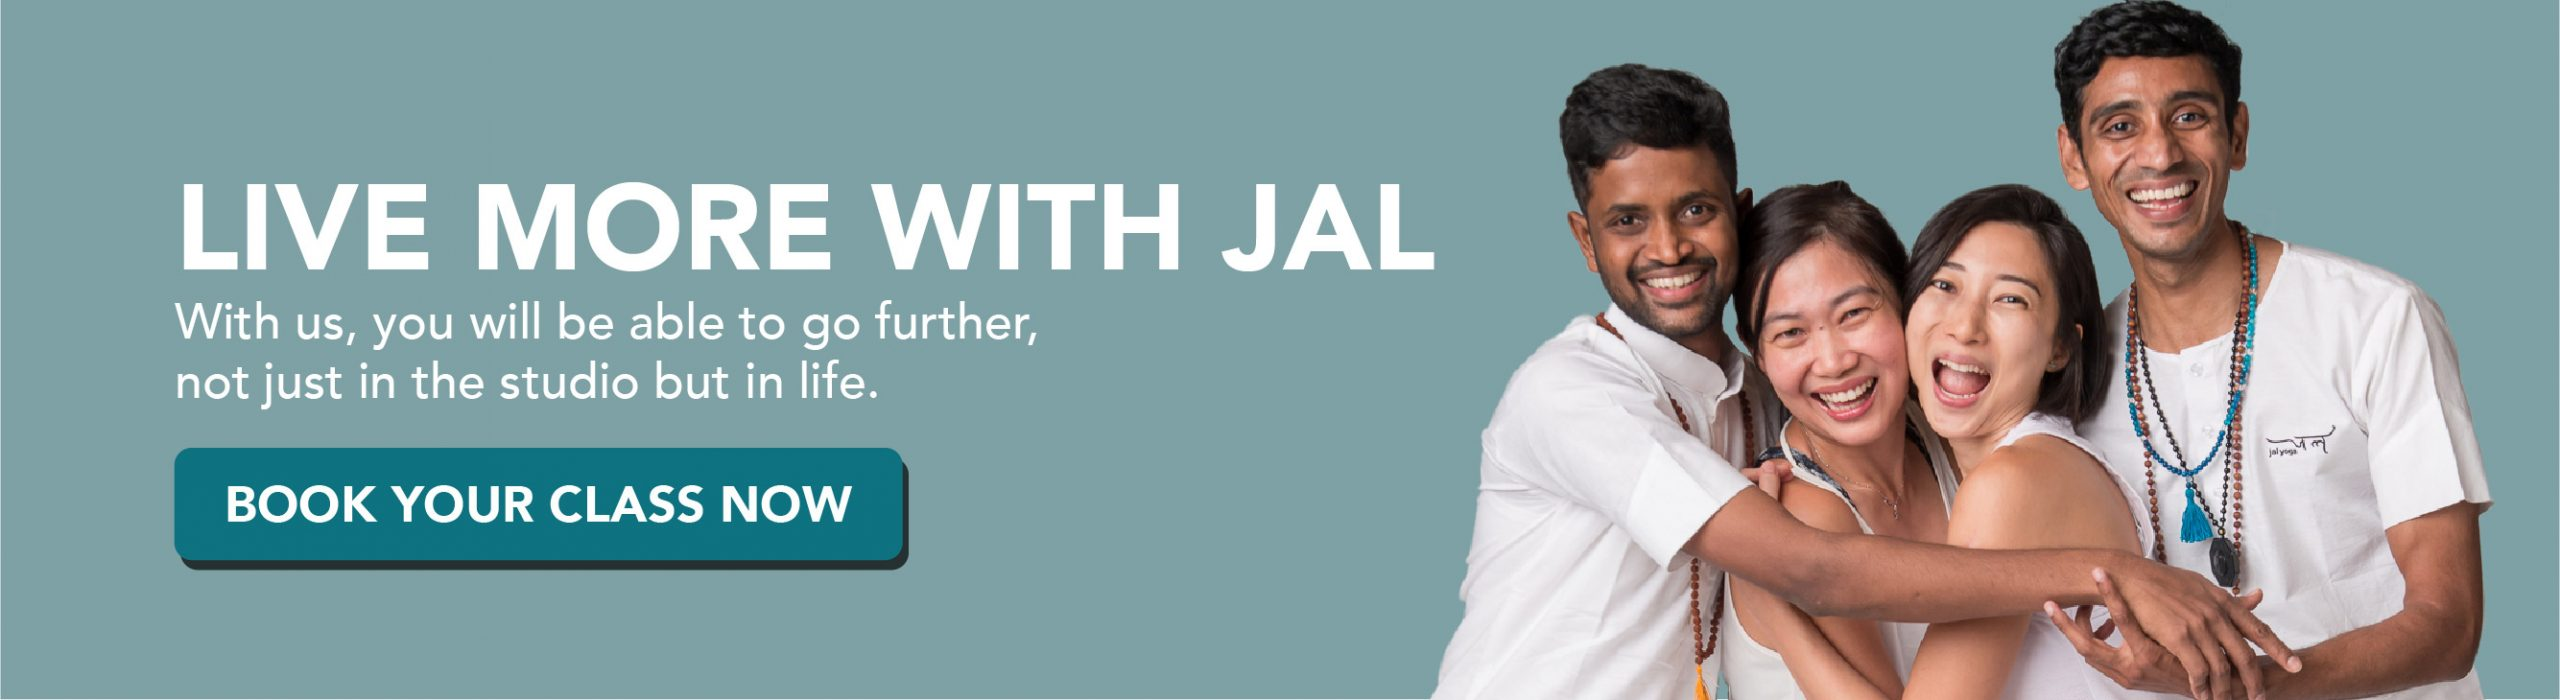 Live more with Jal. with us, you will be able to go further, not just in the studio but in life. Book your class now.